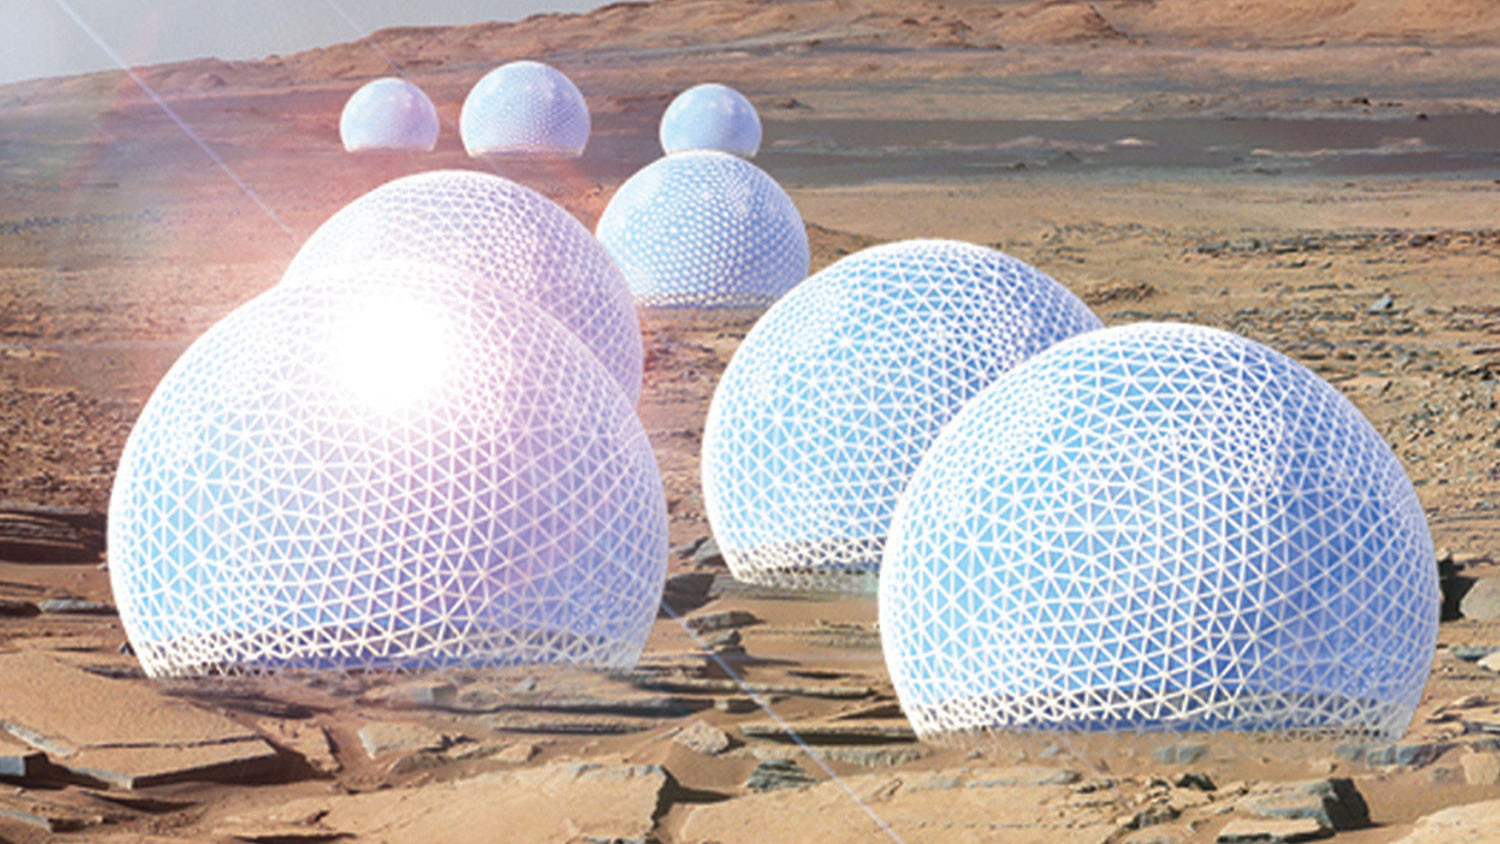 """<p>Фото: &copy;&nbsp;<a href=""""http://news.mit.edu/2017/mars-city-living-designing-for-the-red-planet-1031"""" target=""""_blank"""">Massachusetts Institute of Technology </a></p>"""